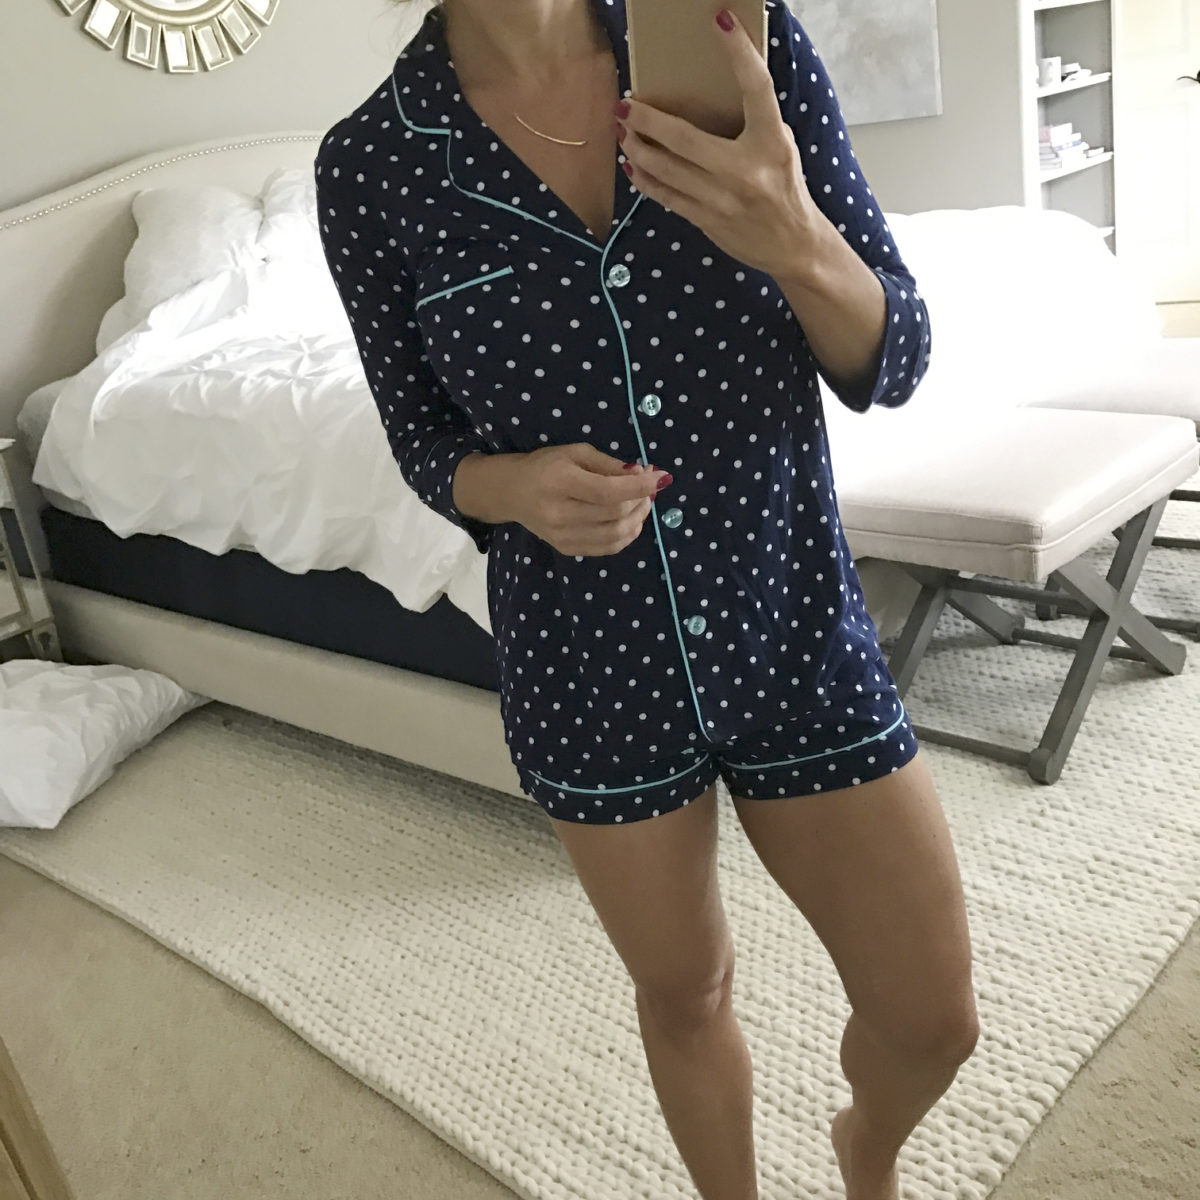 be82c8eb5f68 Nordstrom Anniversary Sale 2017 - Dressing Room Review Part 2 ...